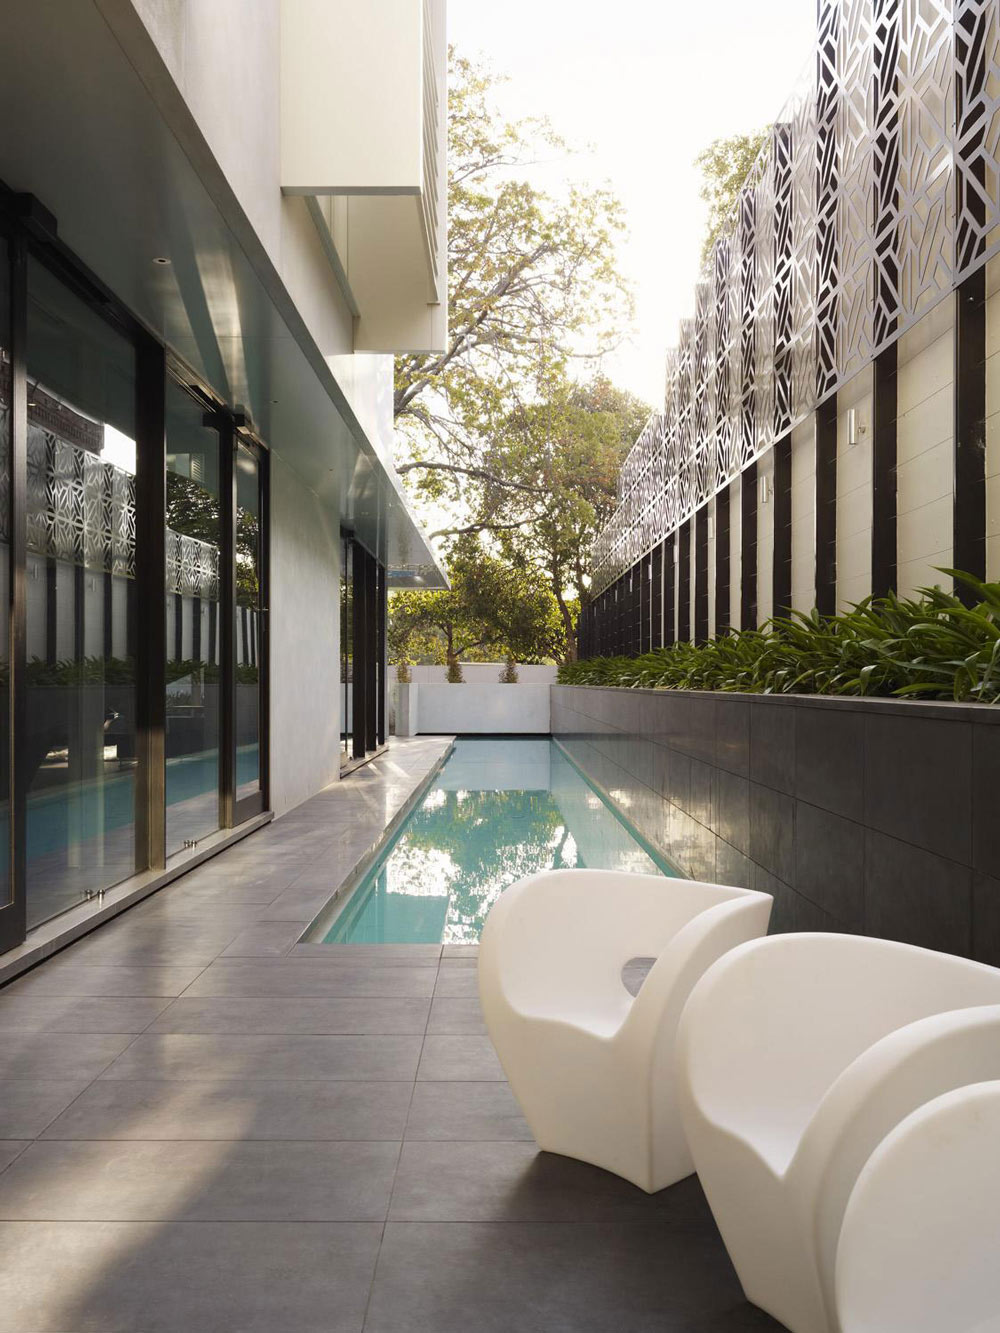 Outdoor Pool, Terrace, Verdant Avenue Home in Melbourne, Australia by Robert Mills Architects